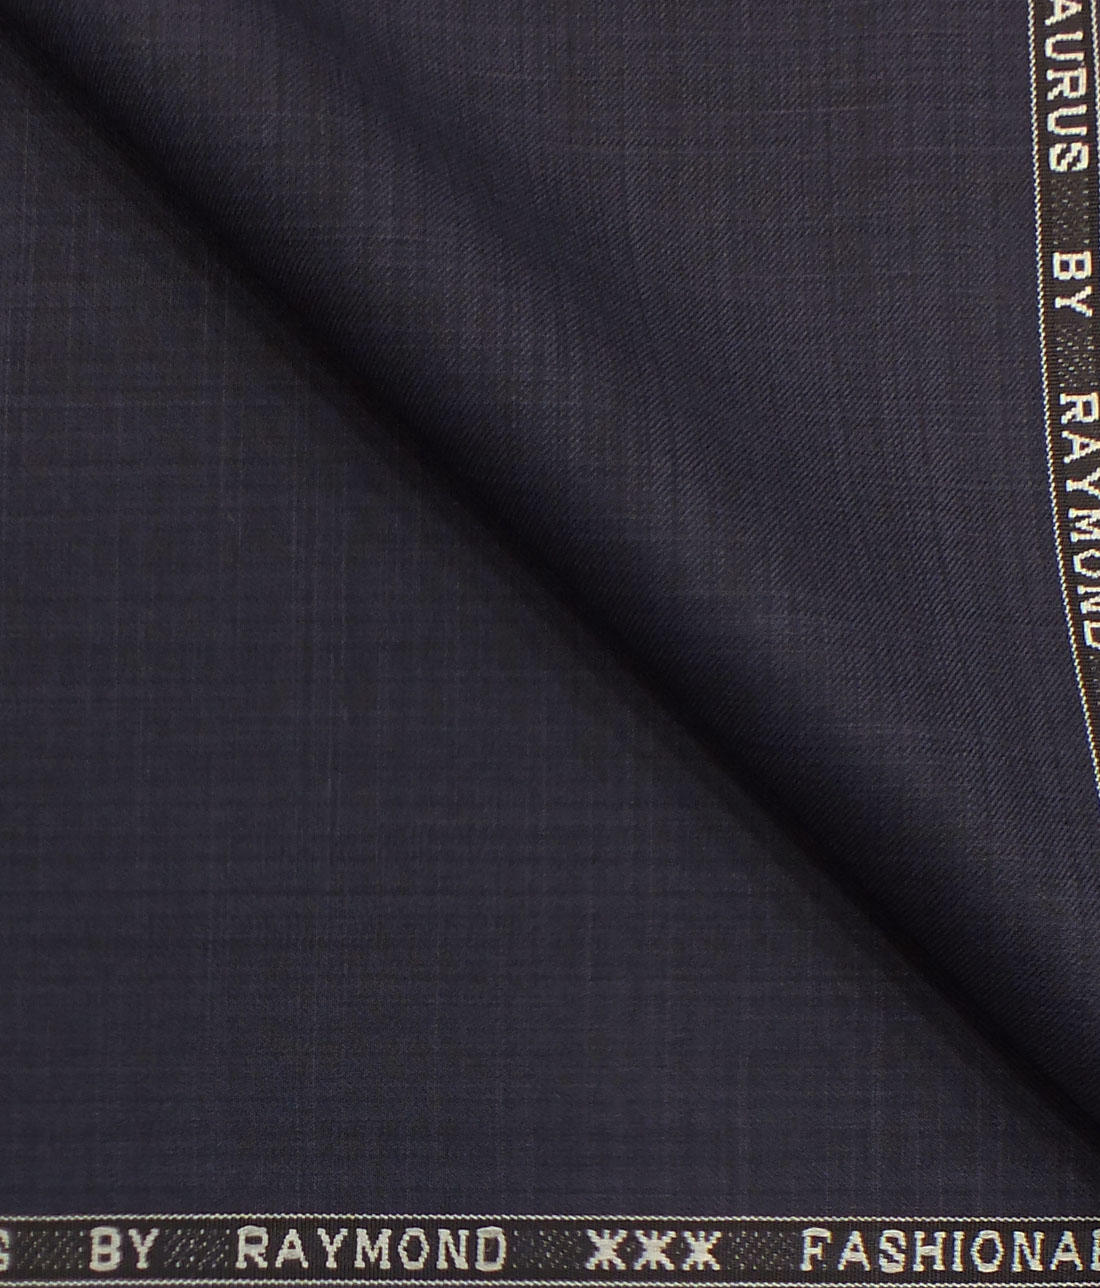 ed14d832a Raymond Dark Purple Self Design Poly Viscose Trouser or 3 Piece Suit Fabric  (Unstitched - 1.25 Mtr)